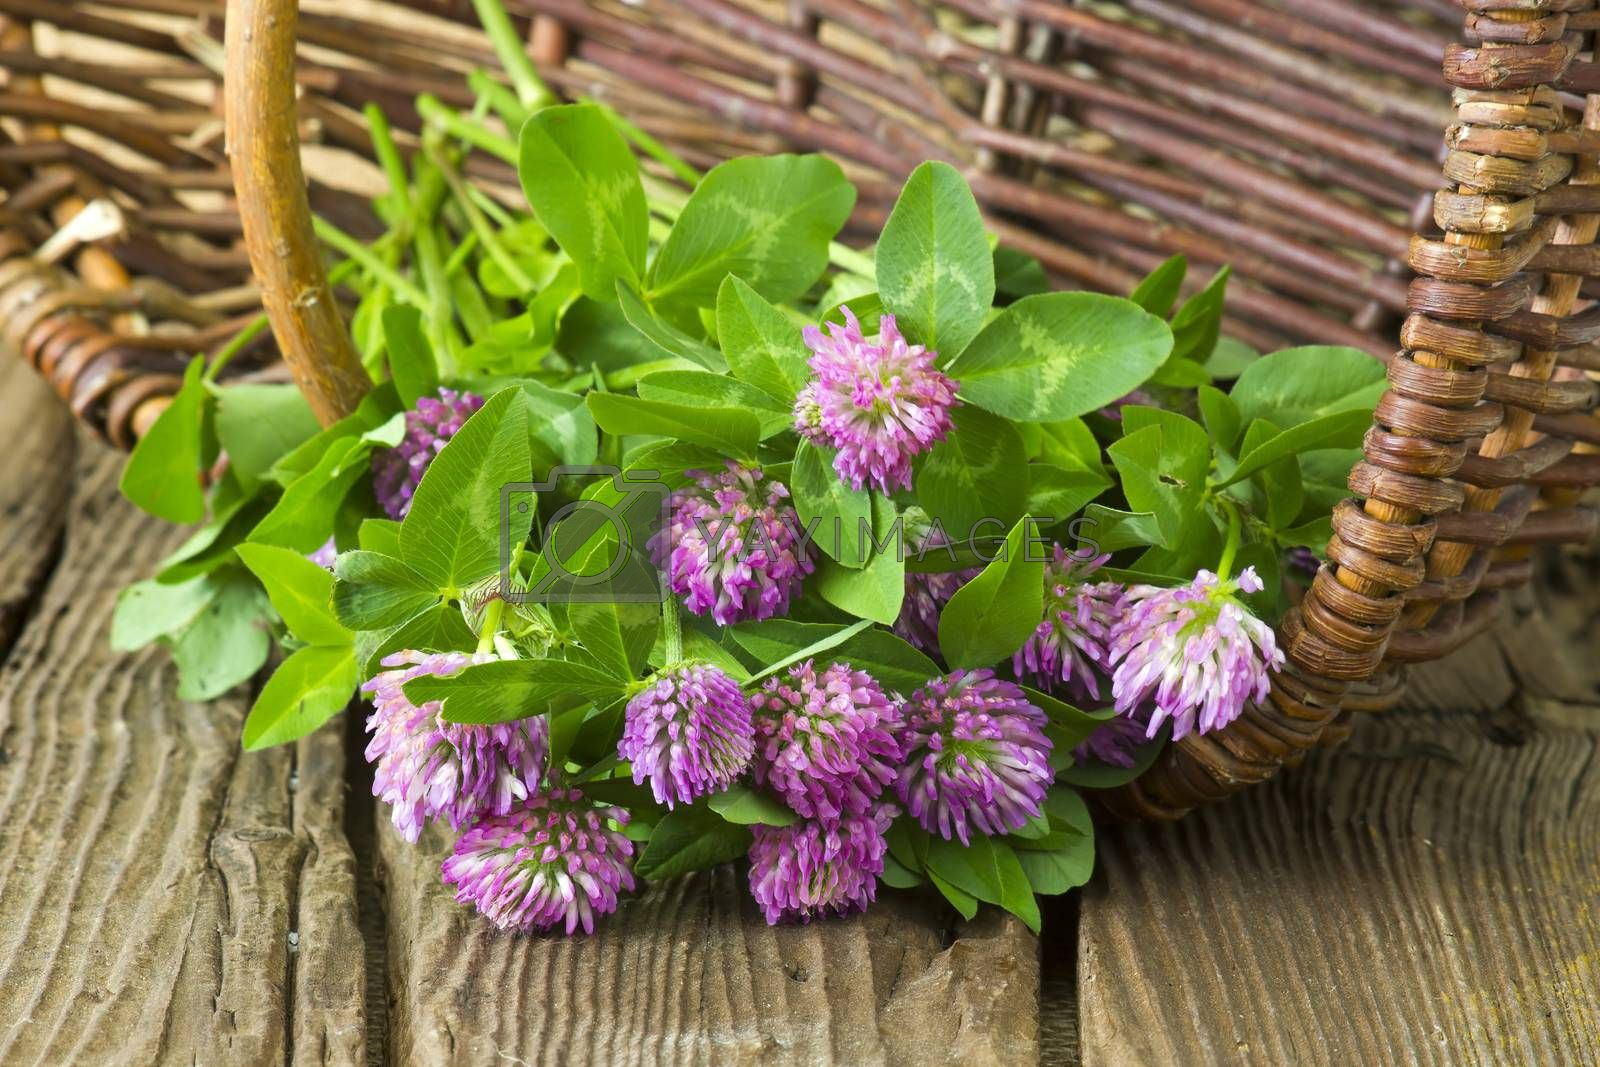 basket with clover on wooden background